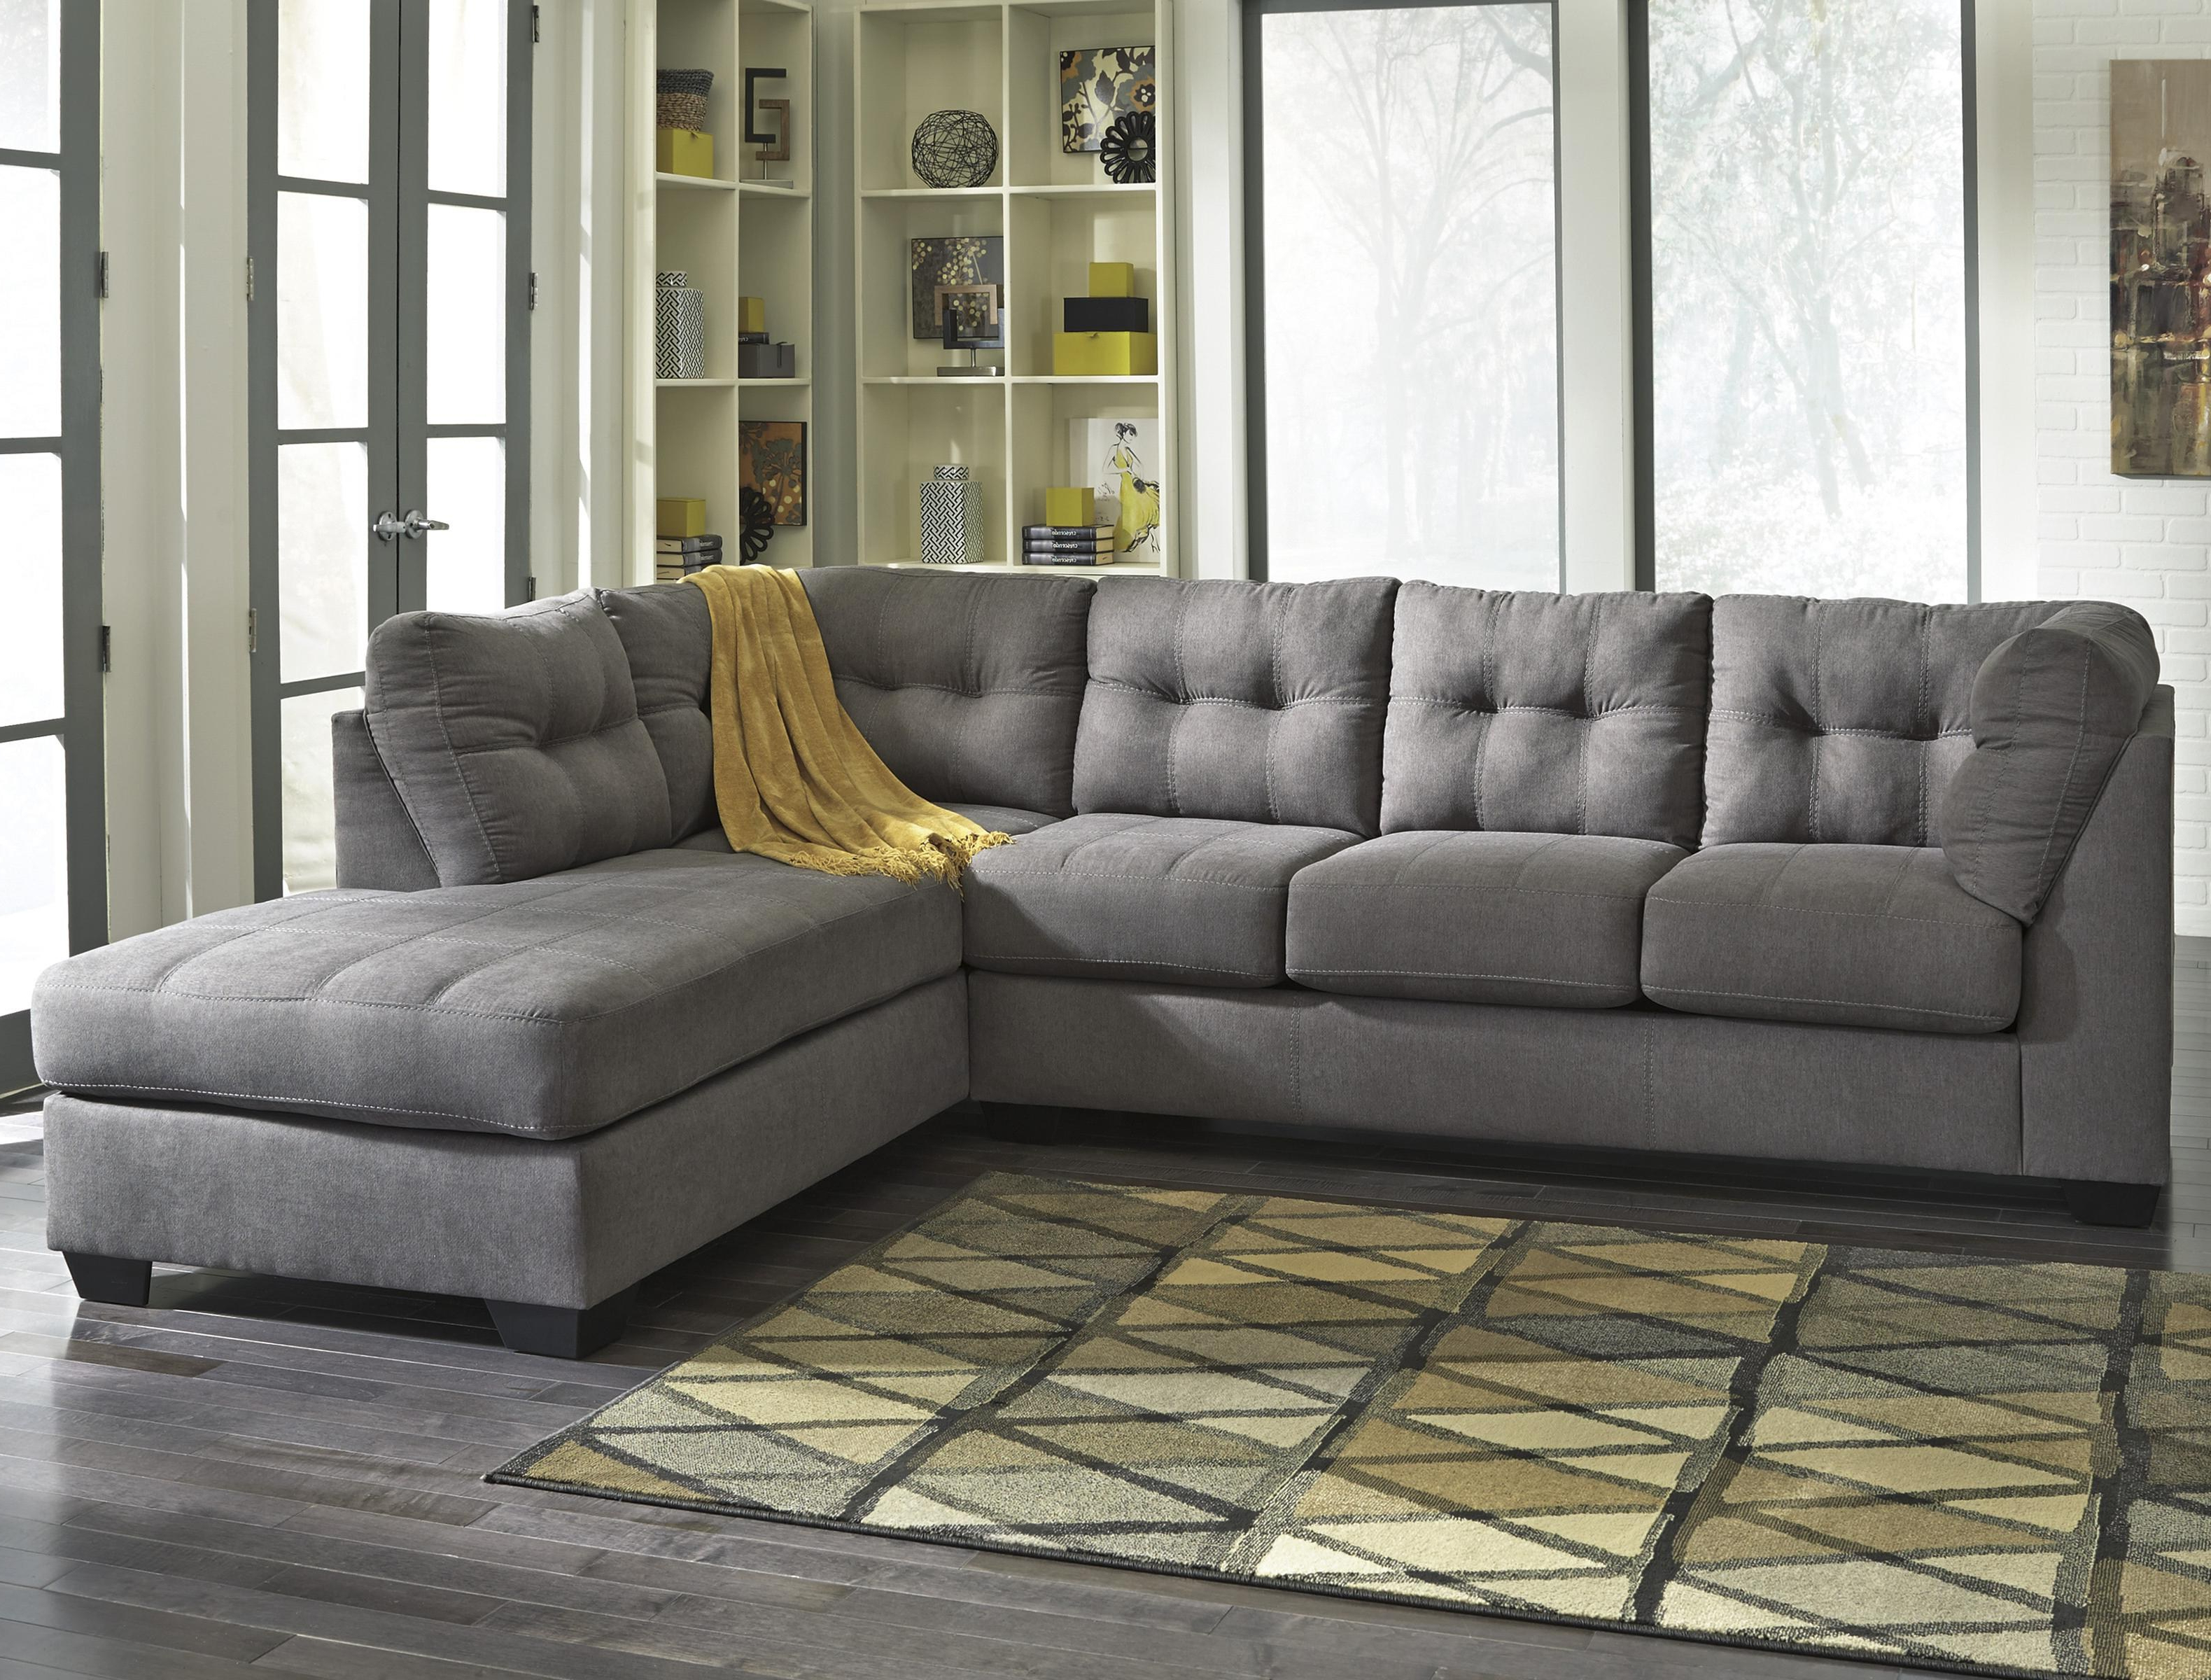 What To Know Before Buying A 3 Piece Sectional Sofa – Elites Home Decor Intended For Newest Kerri 2 Piece Sectionals With Raf Chaise (View 11 of 20)